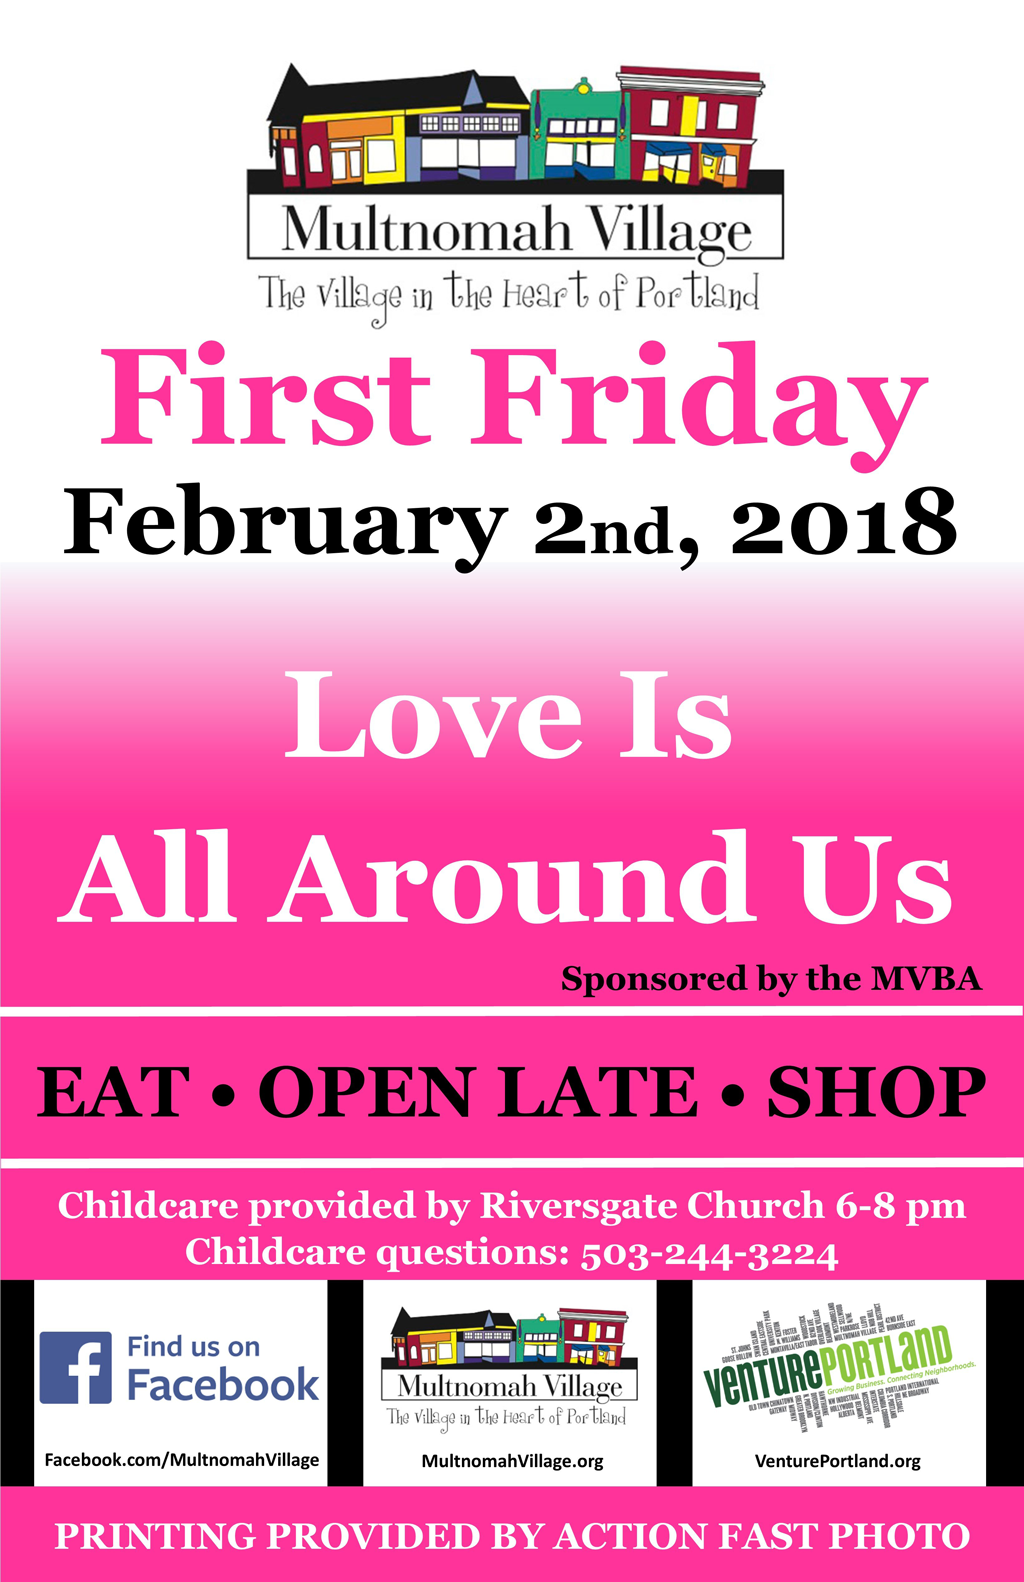 Poster: First Friday February 2, 2018 in Multnomah Village. Eat, Open Late, Shop